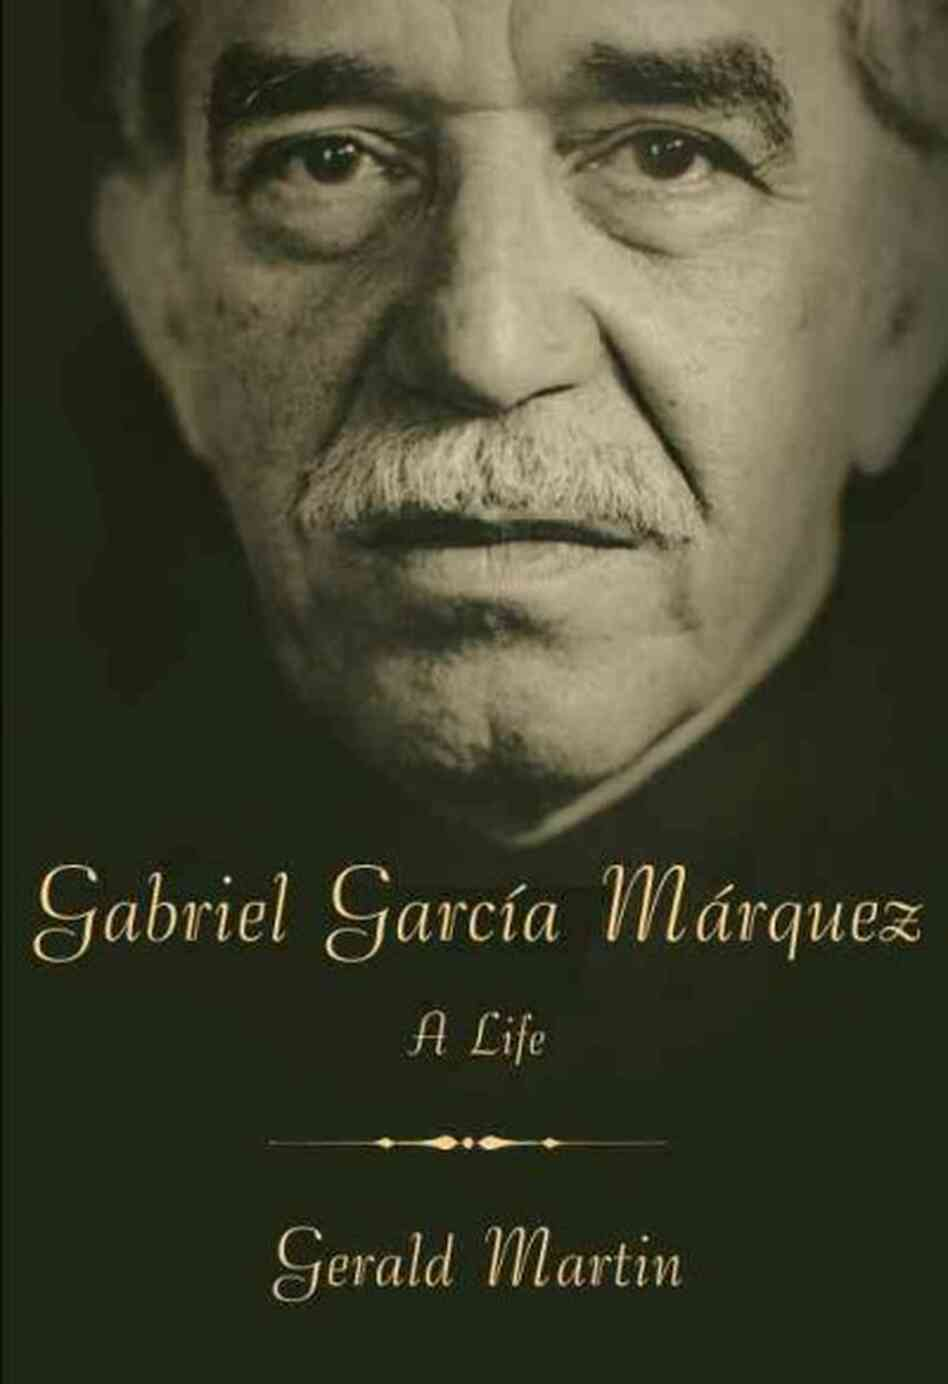 an analysis of news of a kidnapping a non fiction book by gabriel garcia marquez News of a kidnapping (noticia de un secuestro) was first published in 1996 it is a non-fiction book that examines a series of related kidnappings and narco-terrorist actions committed in the early 1990s in colombia by the medellín cartel, a drug cartel founded and operated by pablo escobar.